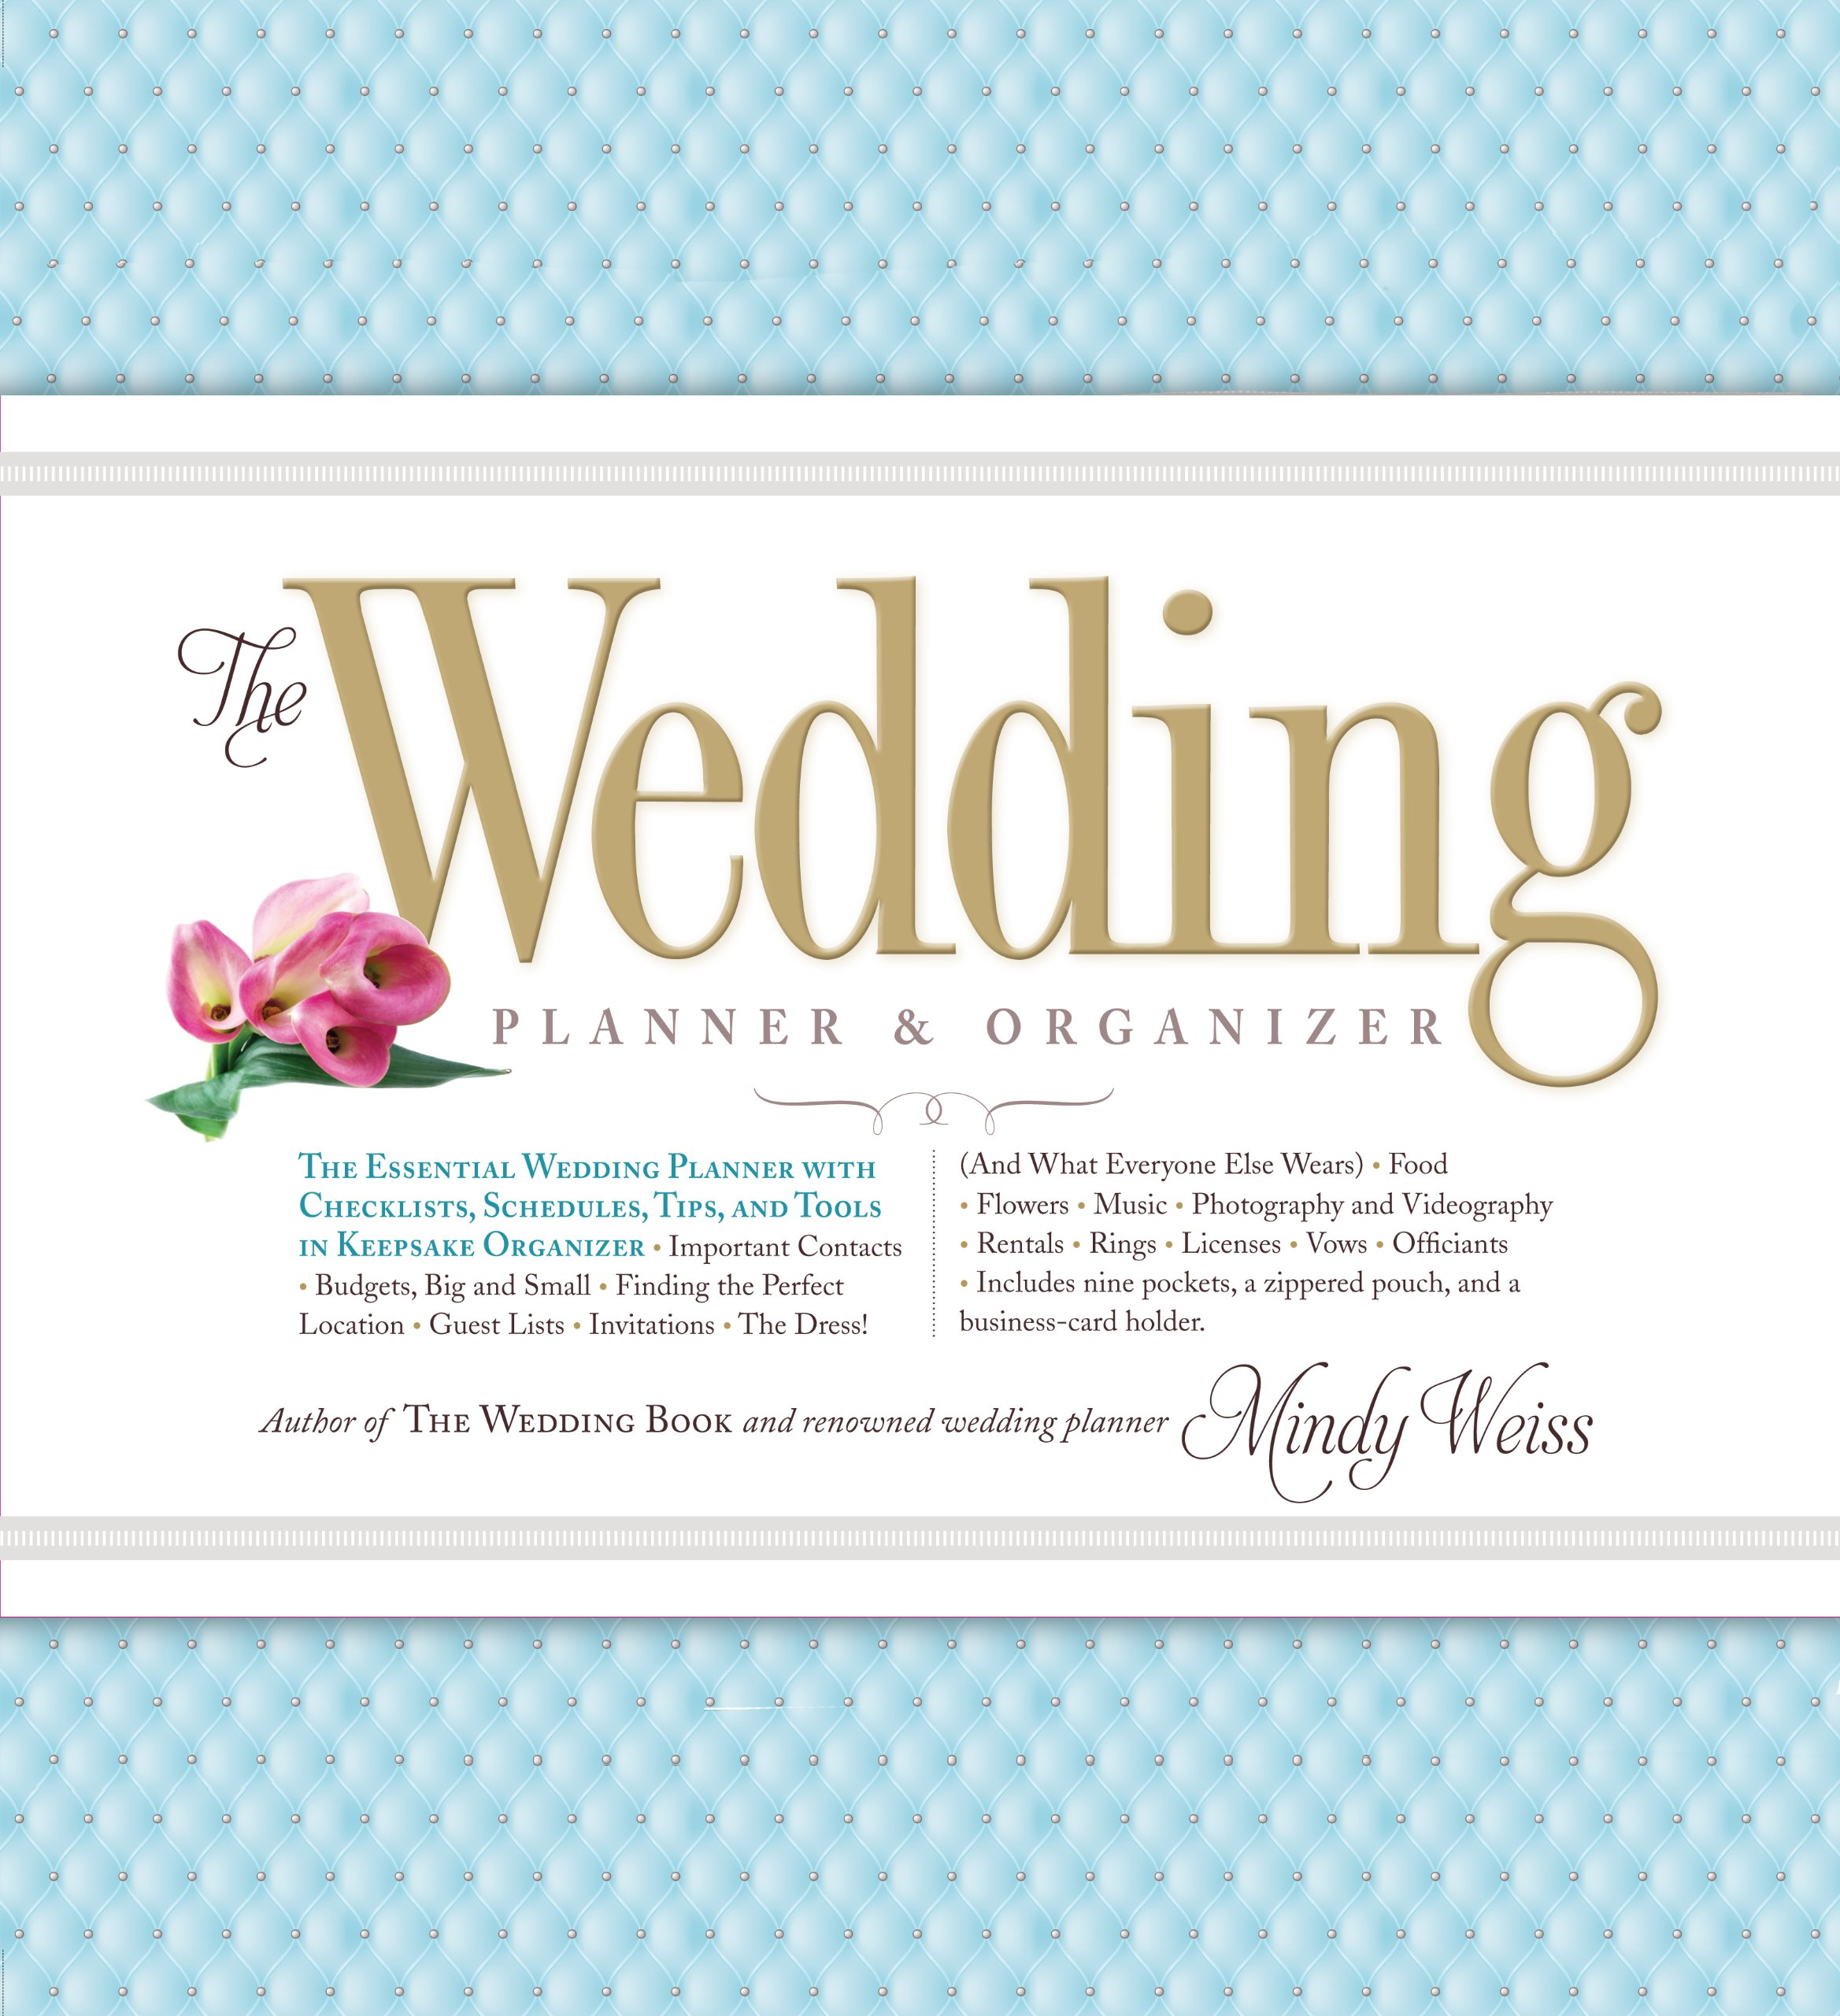 The wedding planner organizer mindy weiss 9780761165972 the wedding planner organizer mindy weiss 9780761165972 amazon books junglespirit Gallery